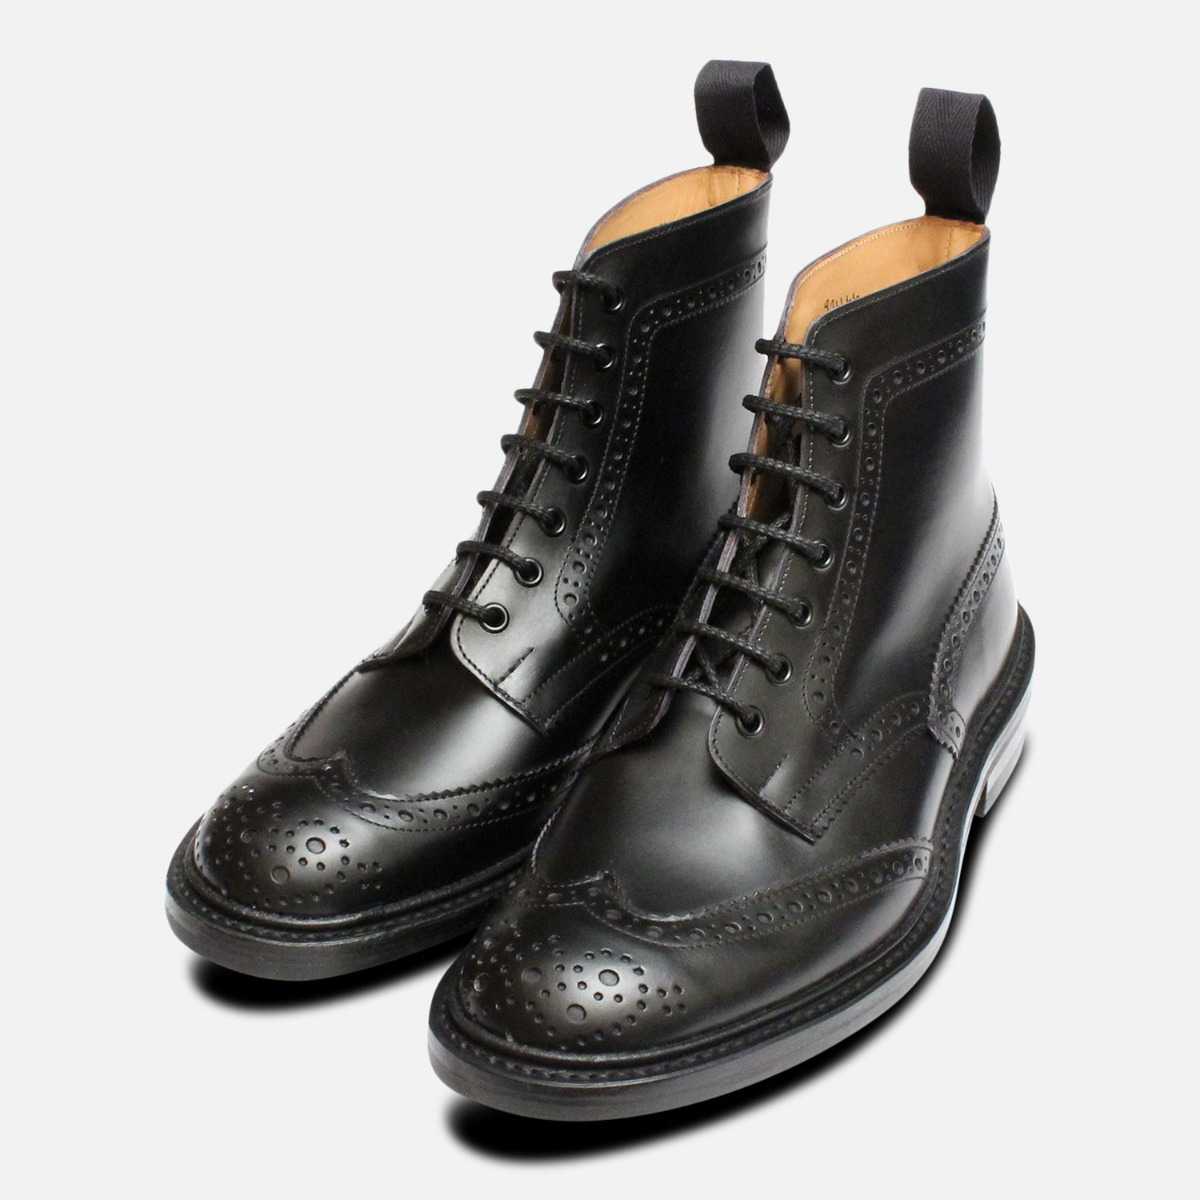 acd9ce26d1fe6 Trickers Stow Black Dainite Brogue Boots   eBay